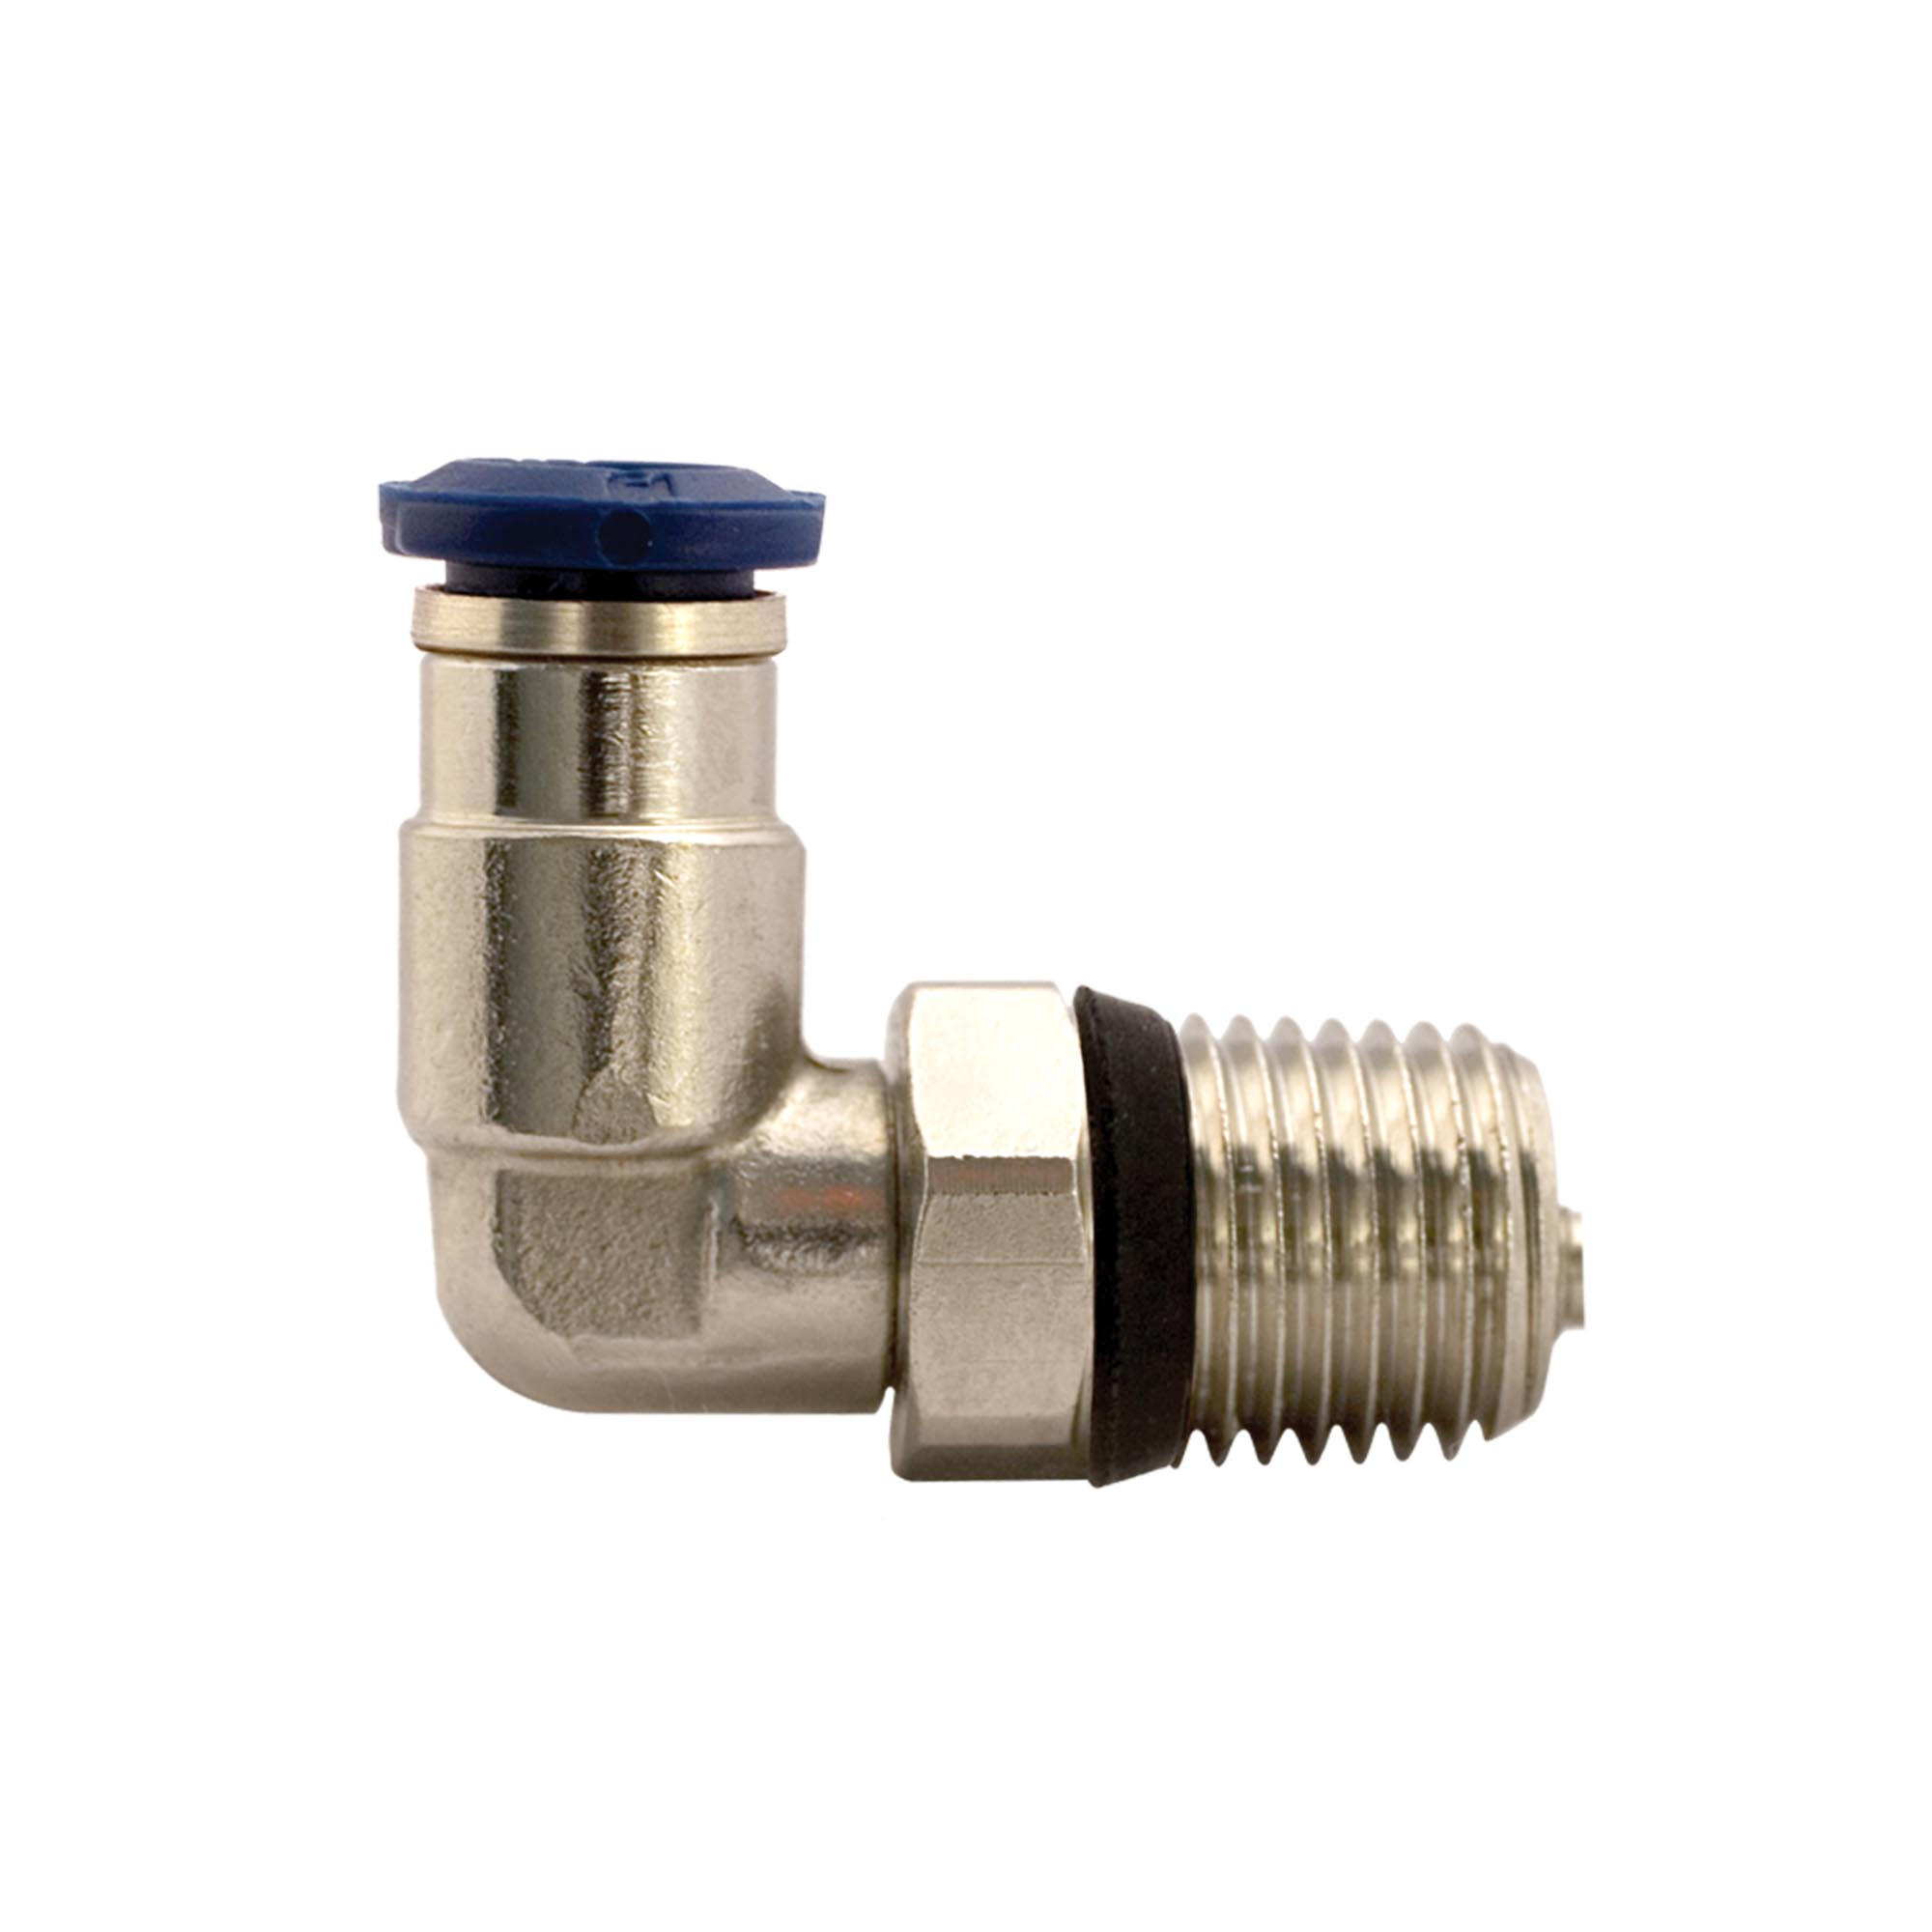 Model 900787 Push-In Swivel Elbow Connector, 3/8 Tube